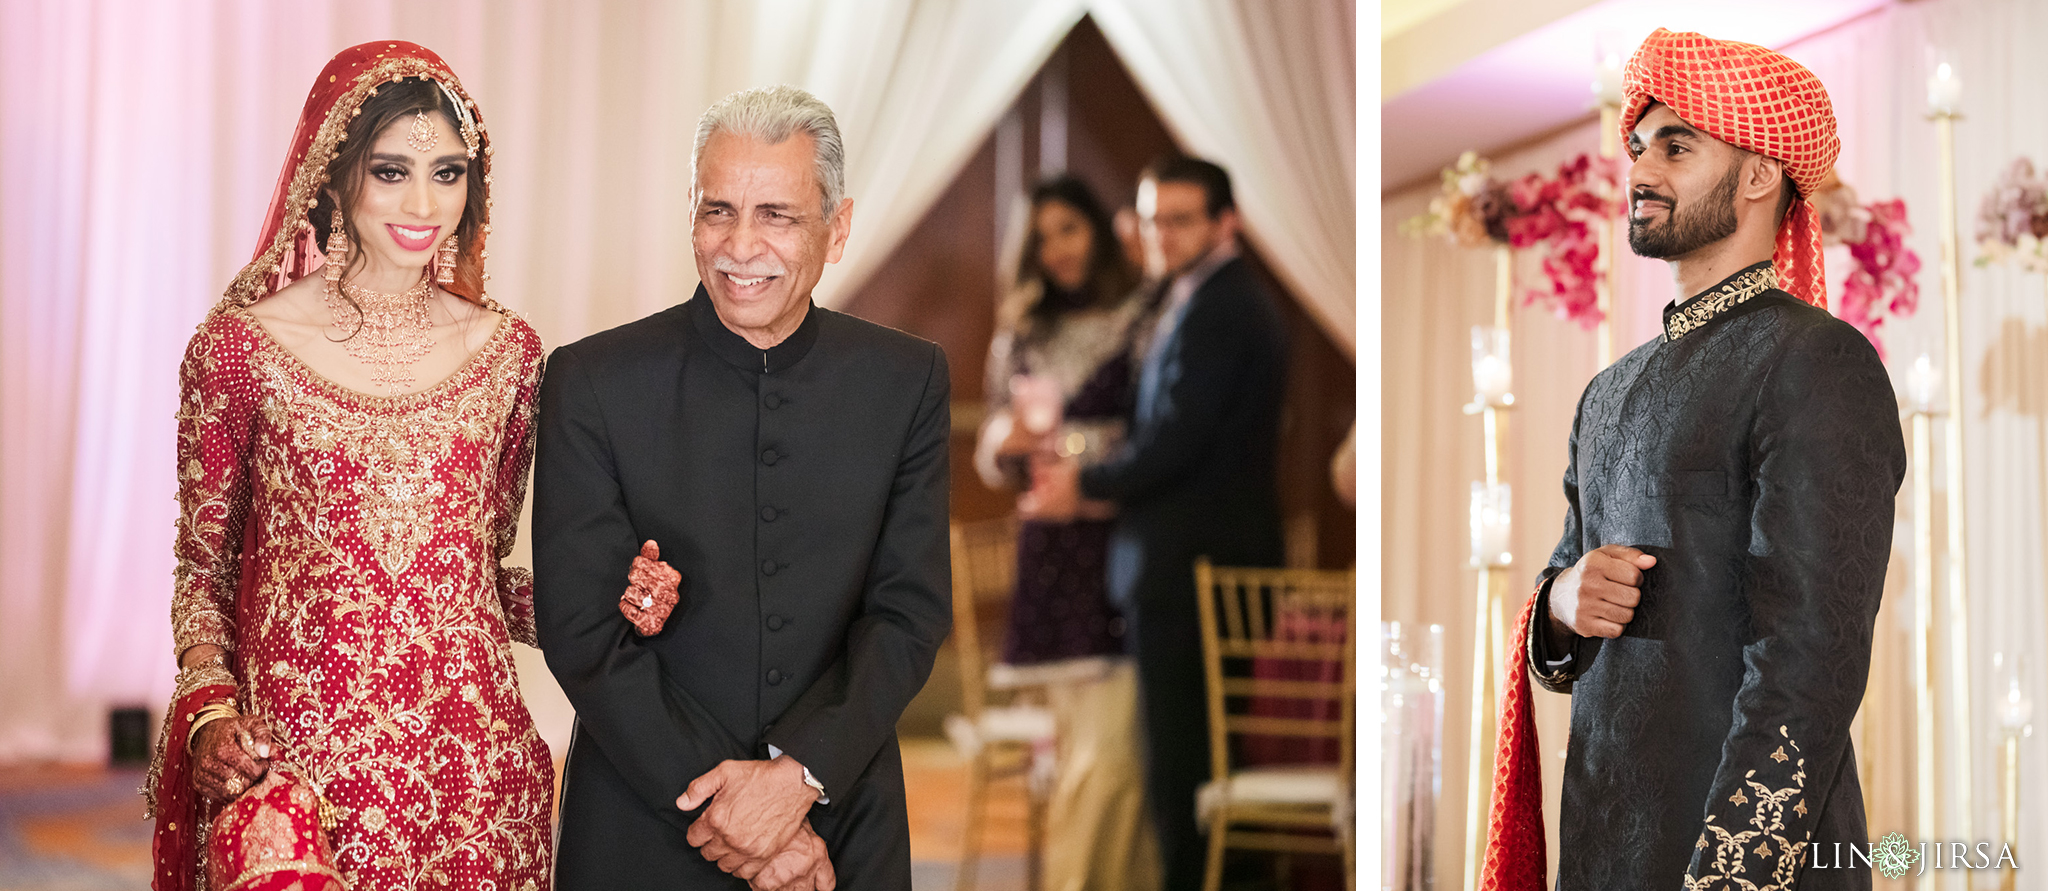 34 Hyatt Regency Garden Grove Pakistani Muslim Wedding Photography